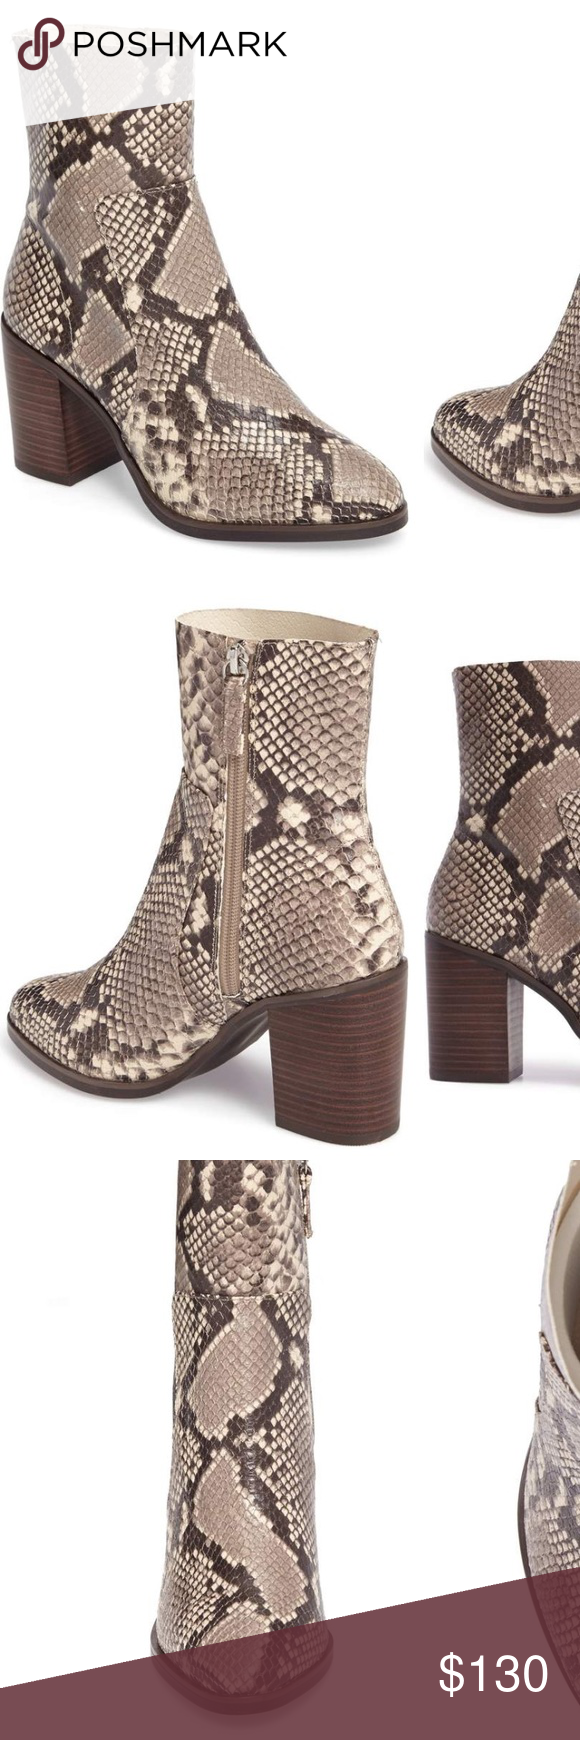 3d20cceb54 Steve Madden Snakeskin Rewind Bootie looks SO good on. I'm selling and very  sad about it but need the money instead :( block heel is 3.5 height, ...